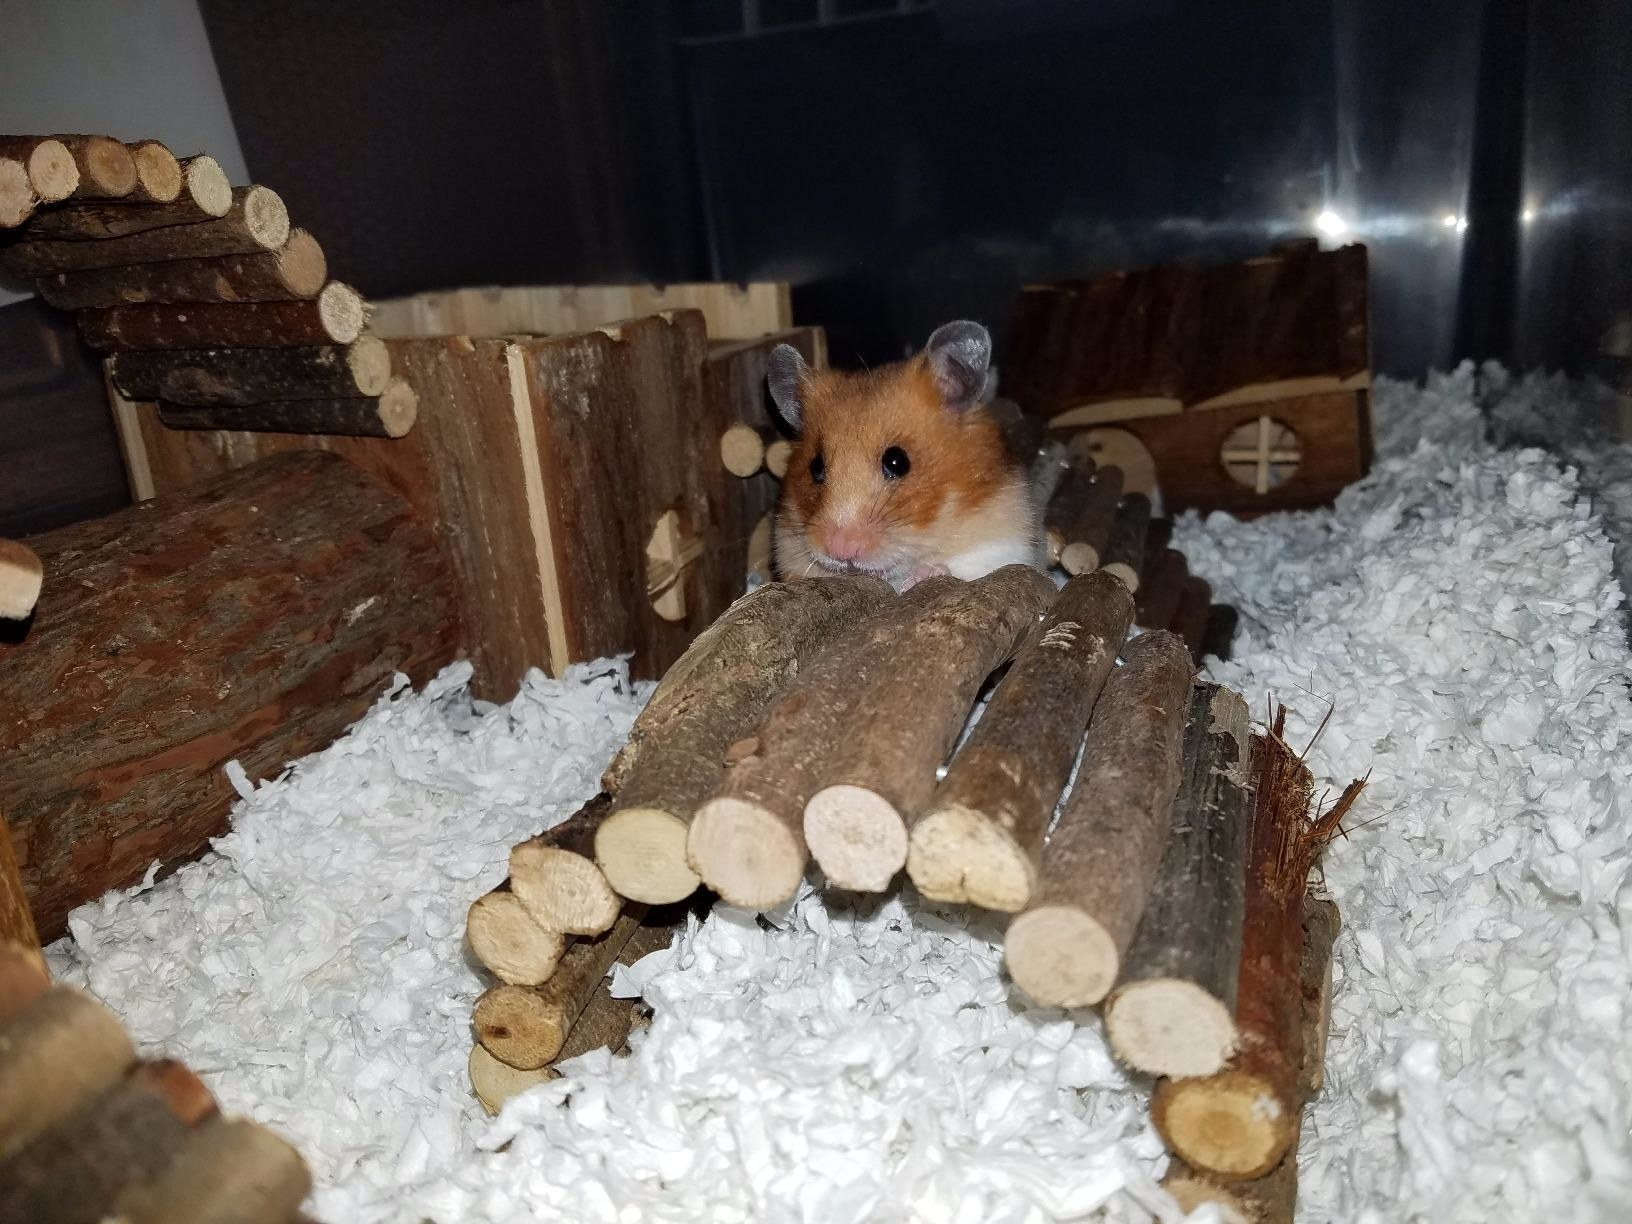 a reviewer's hamster crawling on the wooden bridge